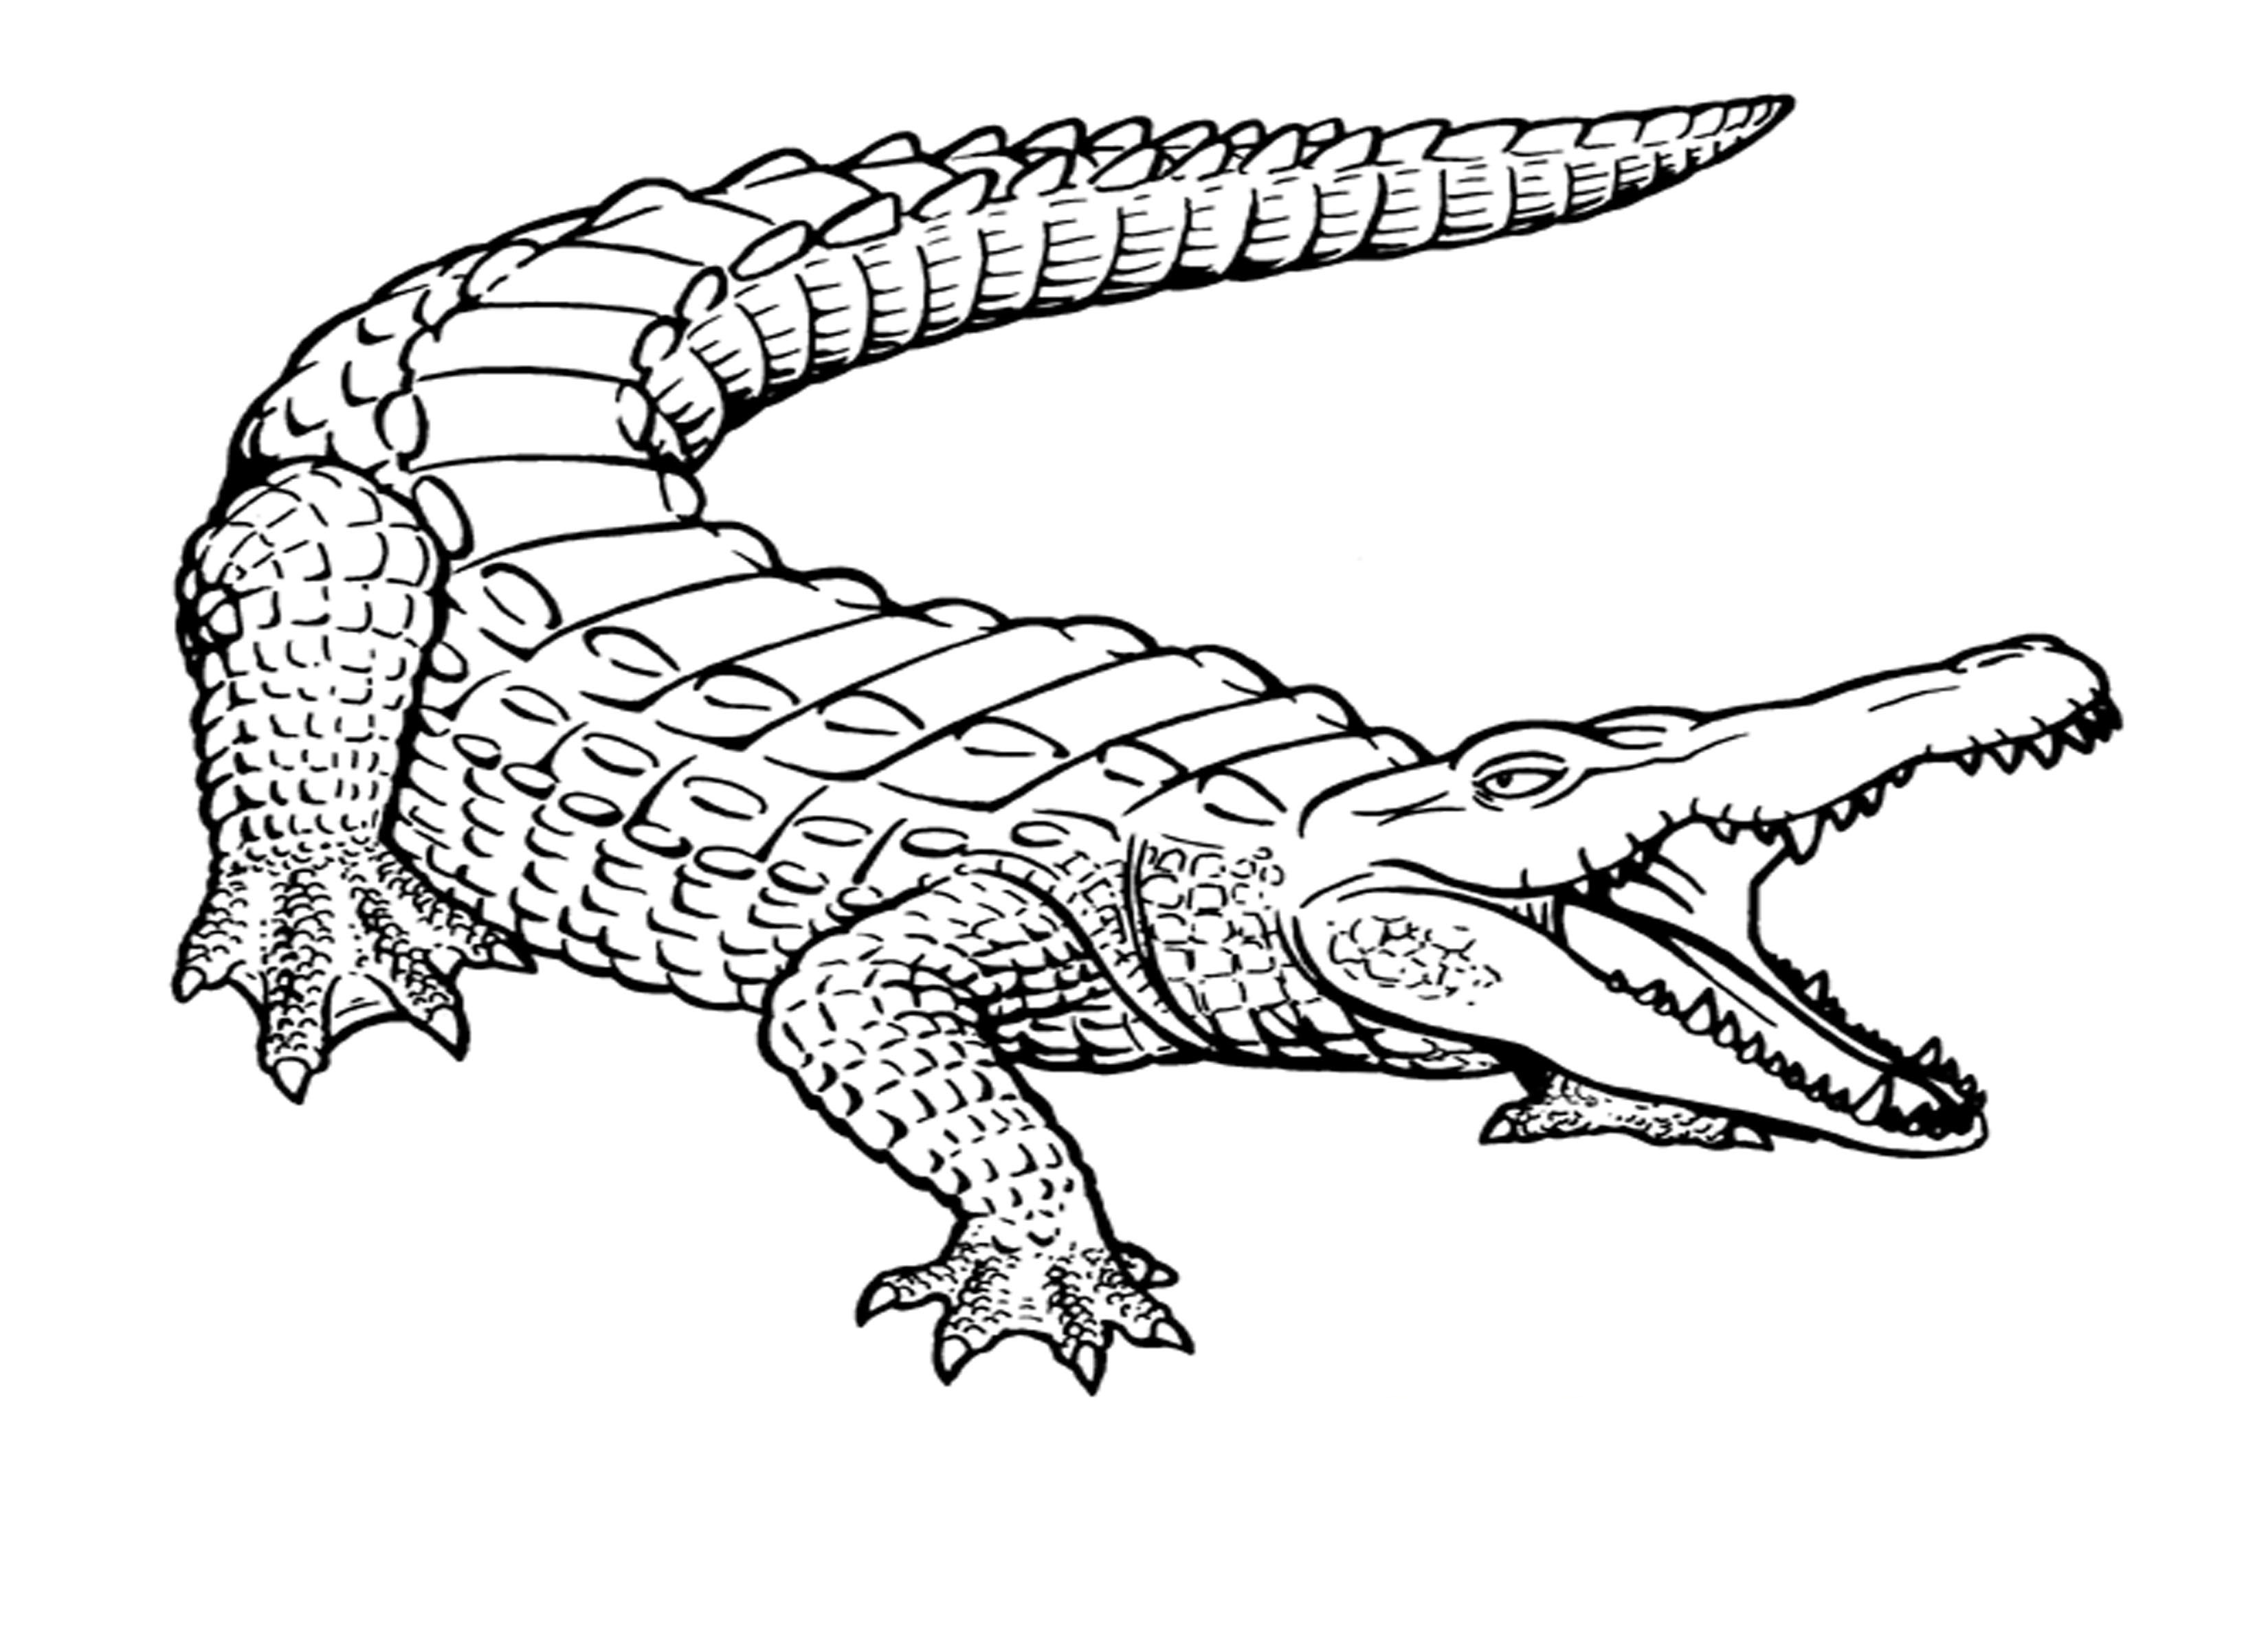 coloring pages for reptiles alligators - photo#15